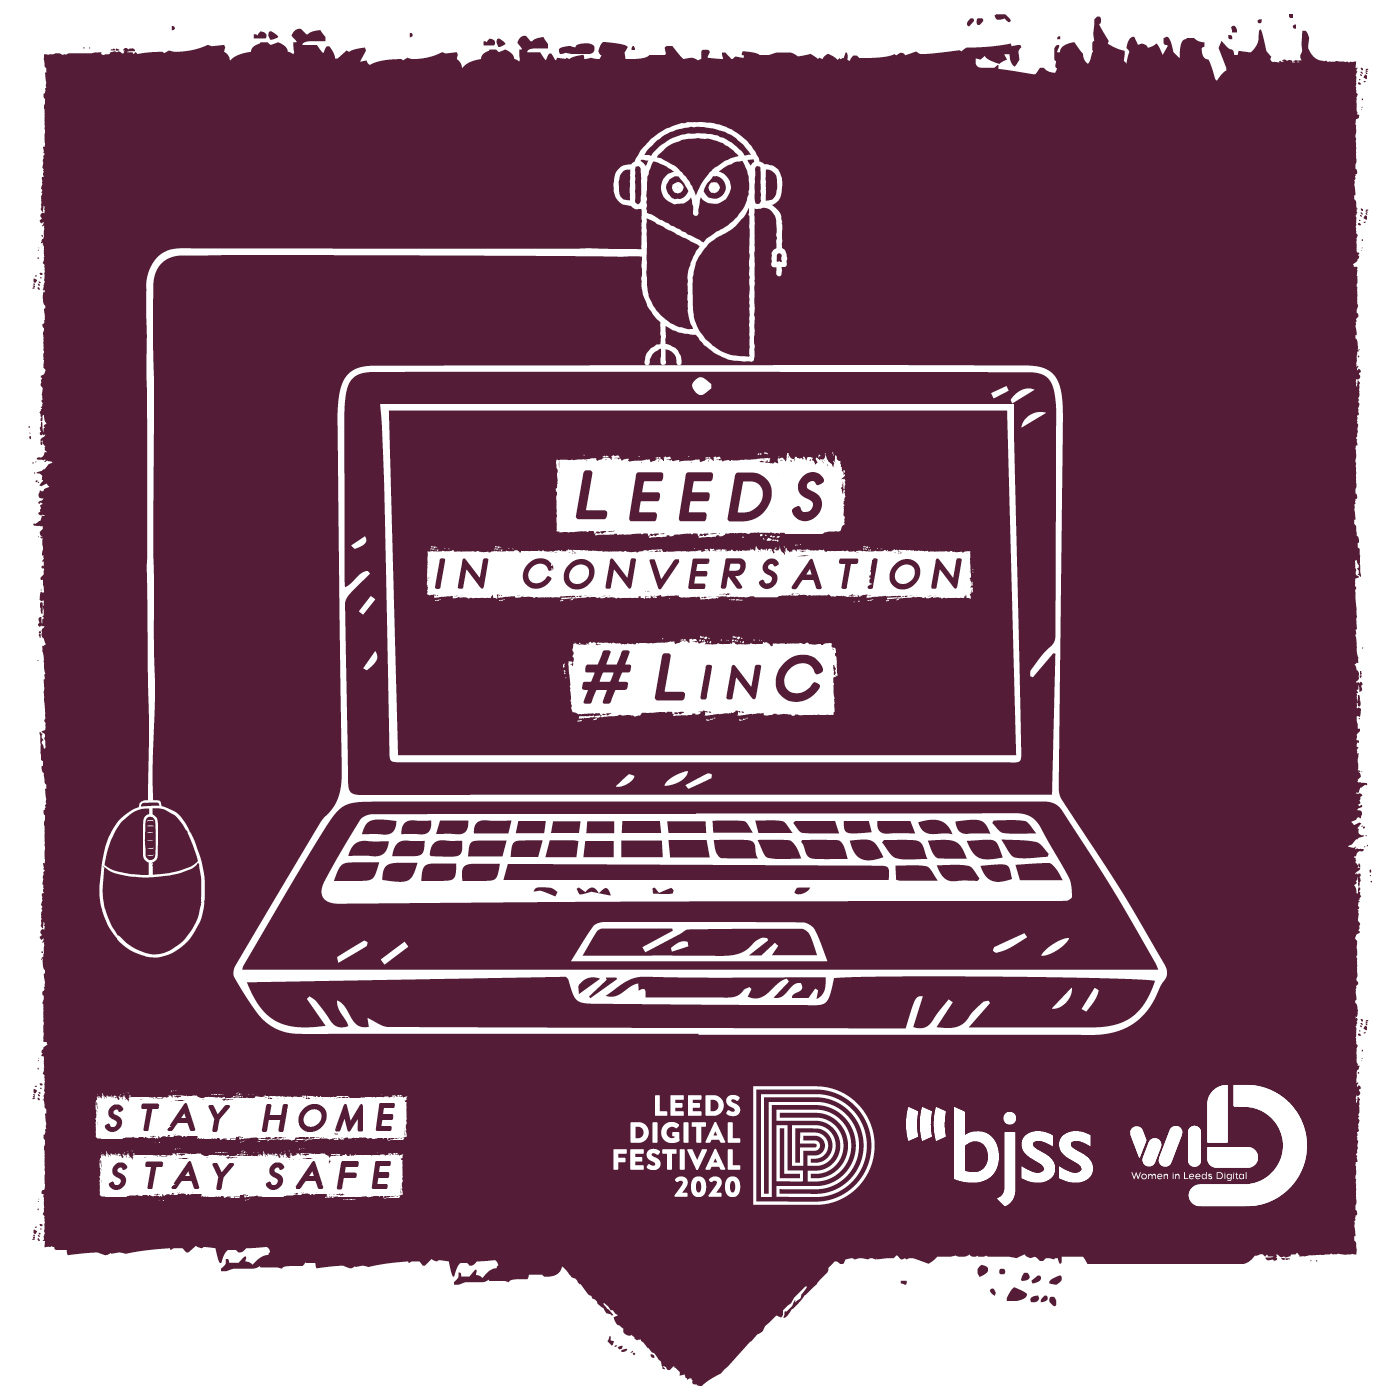 Episode Five - How Leeds Digital Festival 2020 Took on the Pandemic